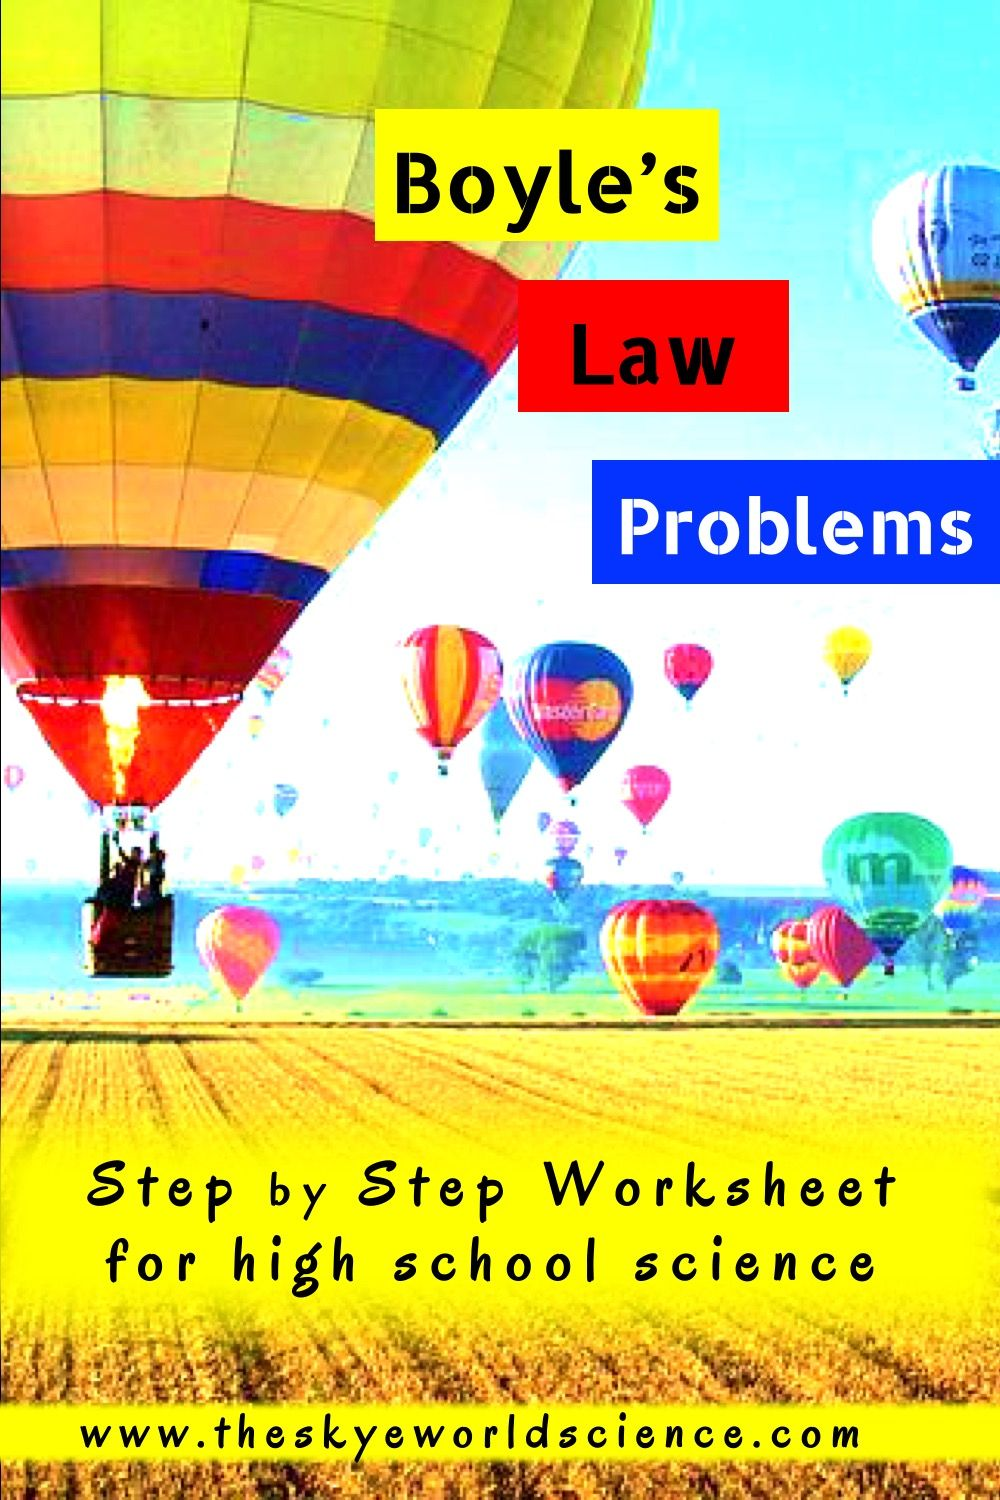 Gas Laws Solving Boyle S Law Problems Basic Math Skills Conceptual Physics High School Science